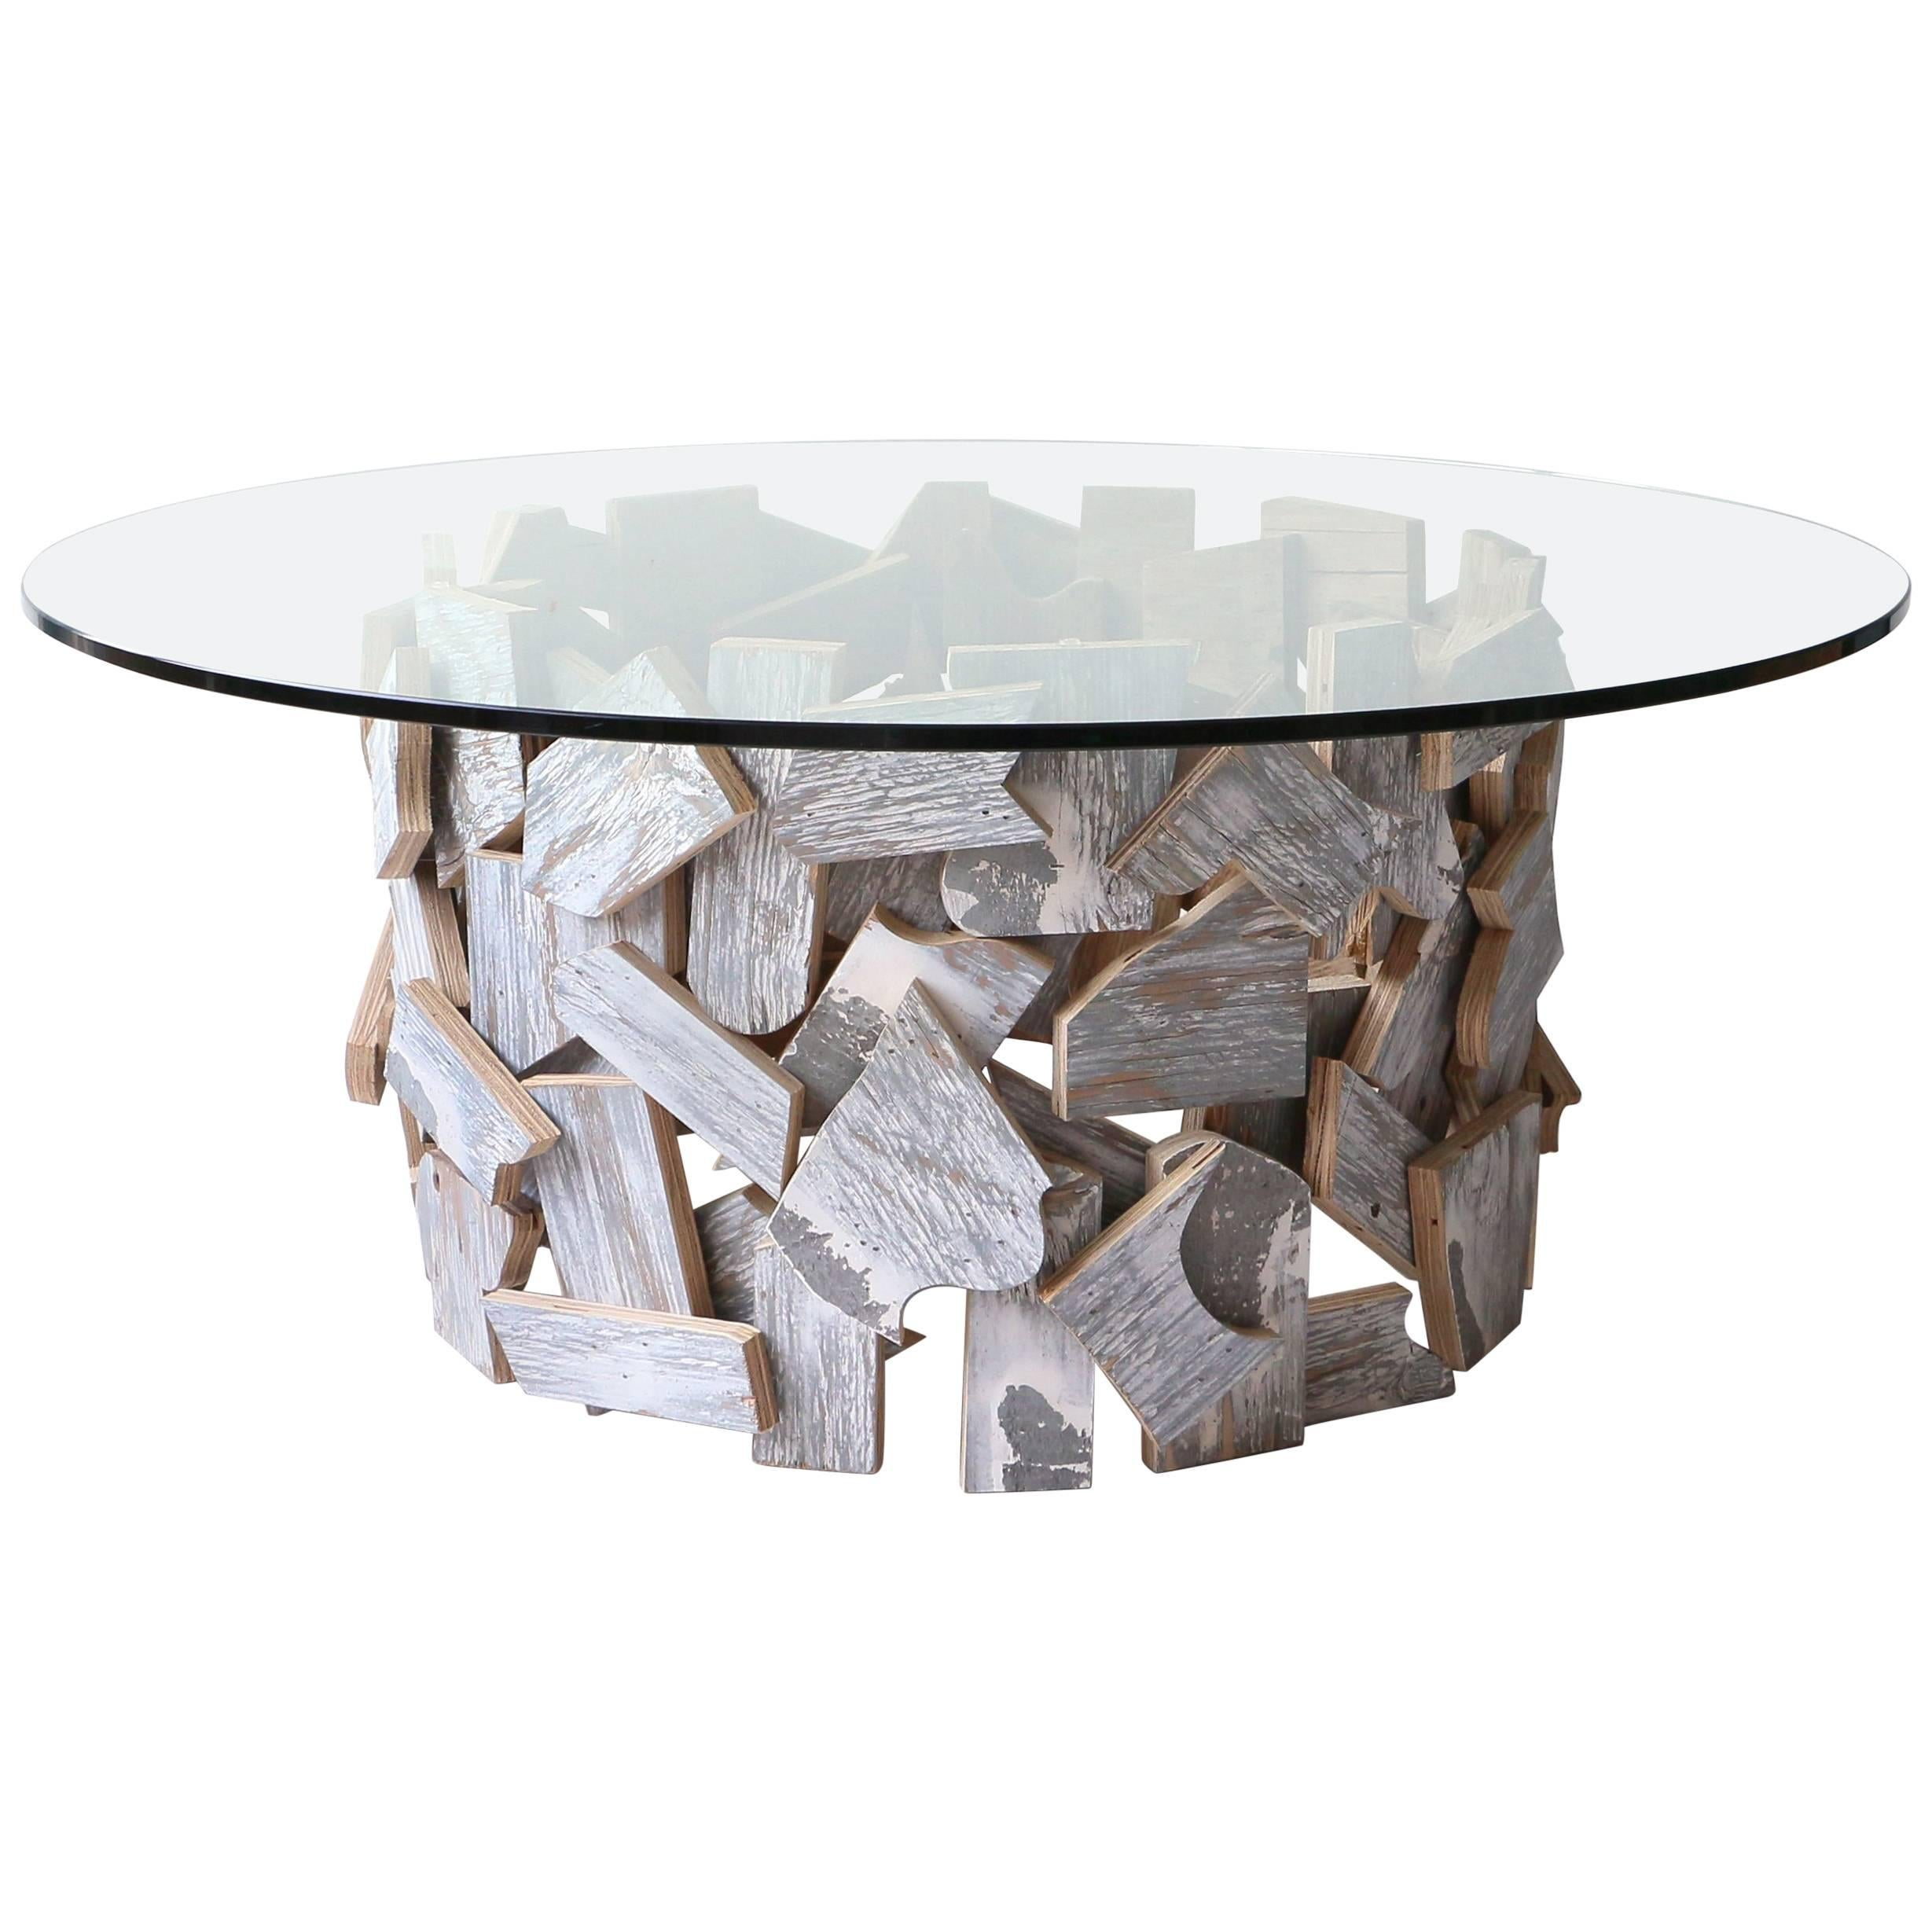 Contemporary Organic Reclaimed Wood Round Coffee Table With Clear Glass Top  For Sale